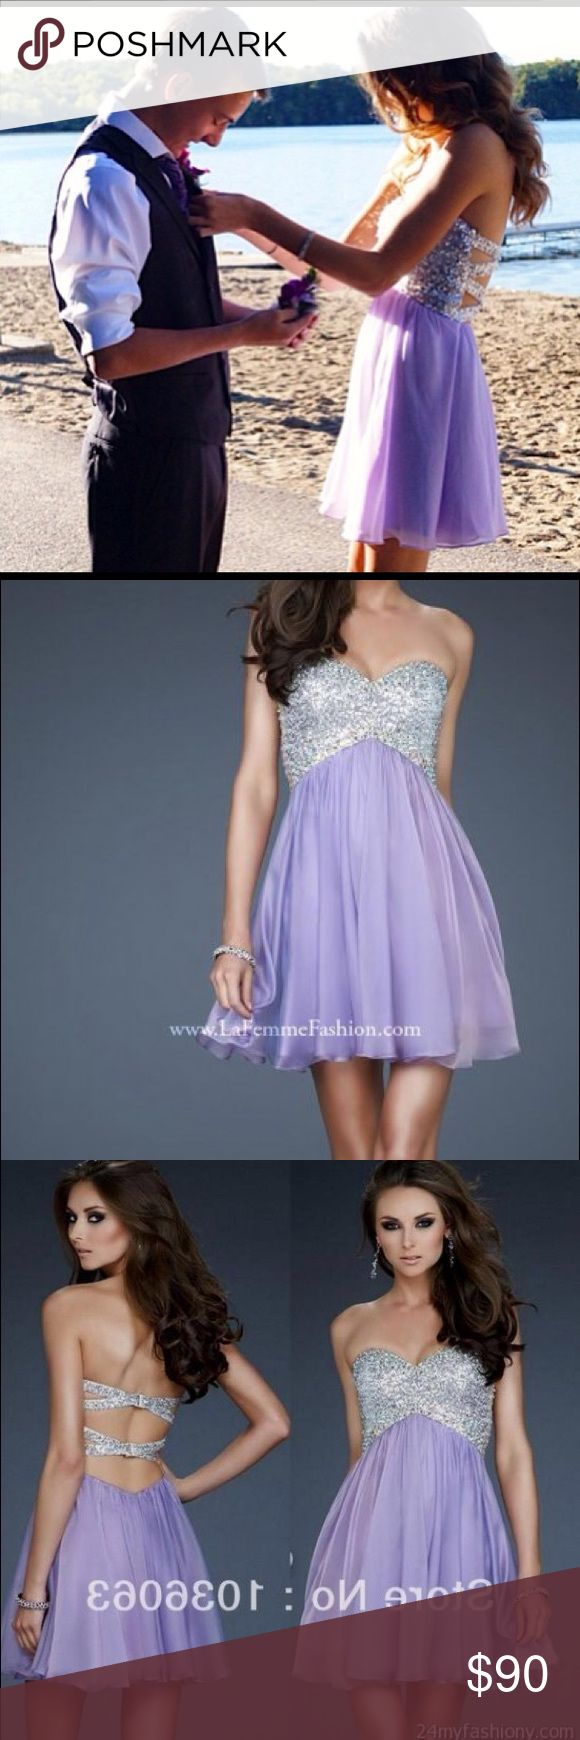 Short Purple and Silver Prom or Homecoming dress Great Quality, and Super cute! Got tons of Complements and it's in Perfect Condition! Dresses Prom